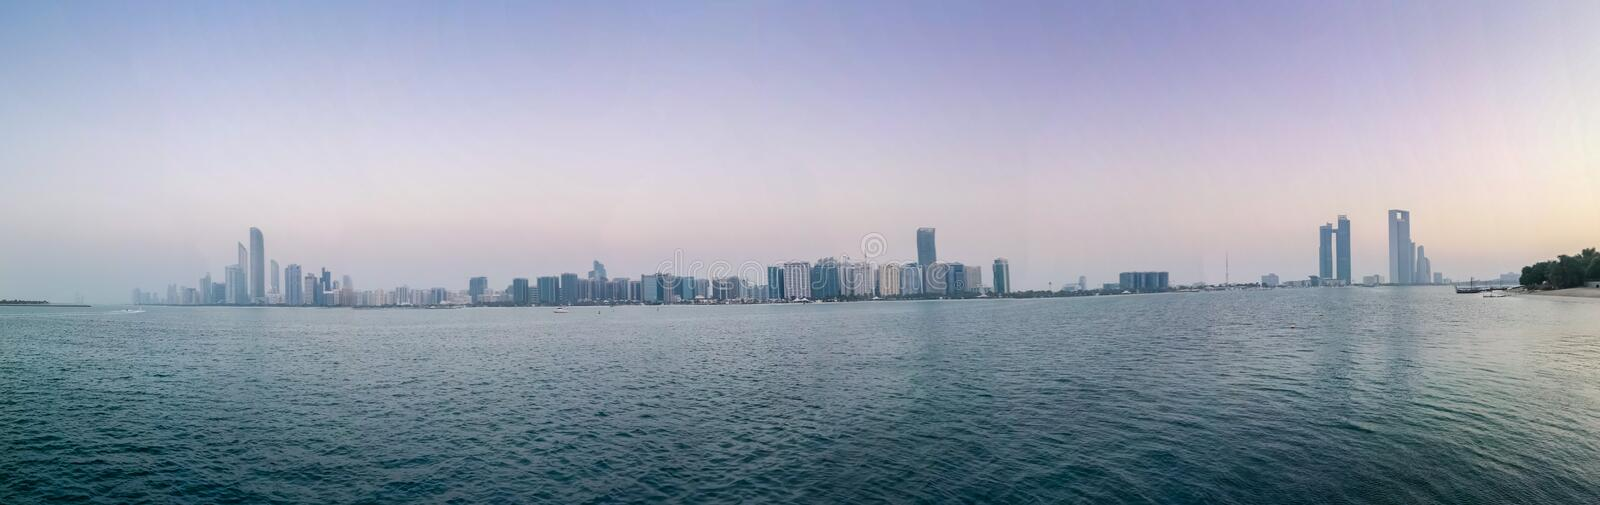 Beautiful panorama shot of Abu Dhabi city skyline towers and beach at sunset royalty free stock photos